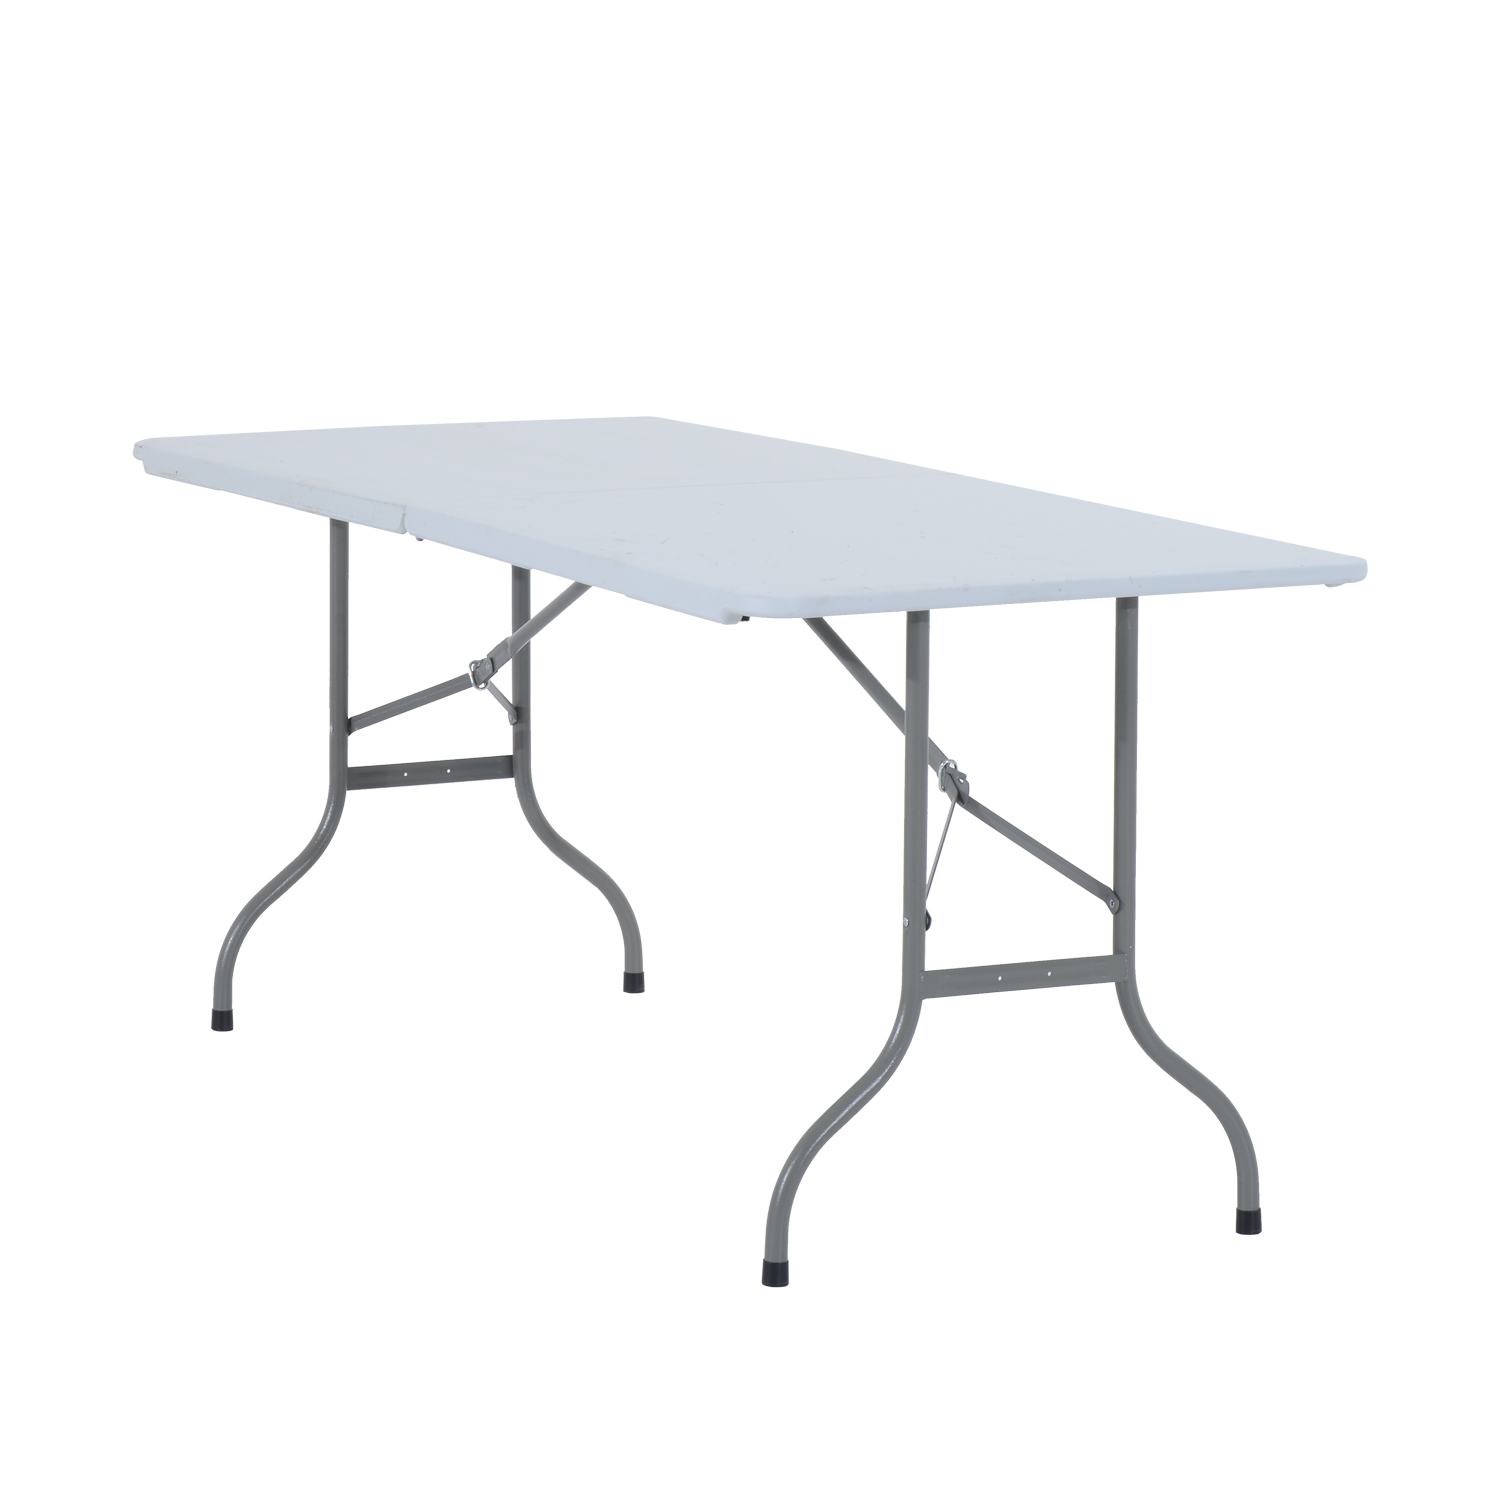 Image of £35.99 HOMCOM Folding Table 1.8m Heavy Duty Adjustable Market Stall Portable Dinning Outdoor / Outsunny 1.8 m Garden Camping Party Dining Foldable - White/Grey Steel White Picnic BBQ 84B-008 5055974823365